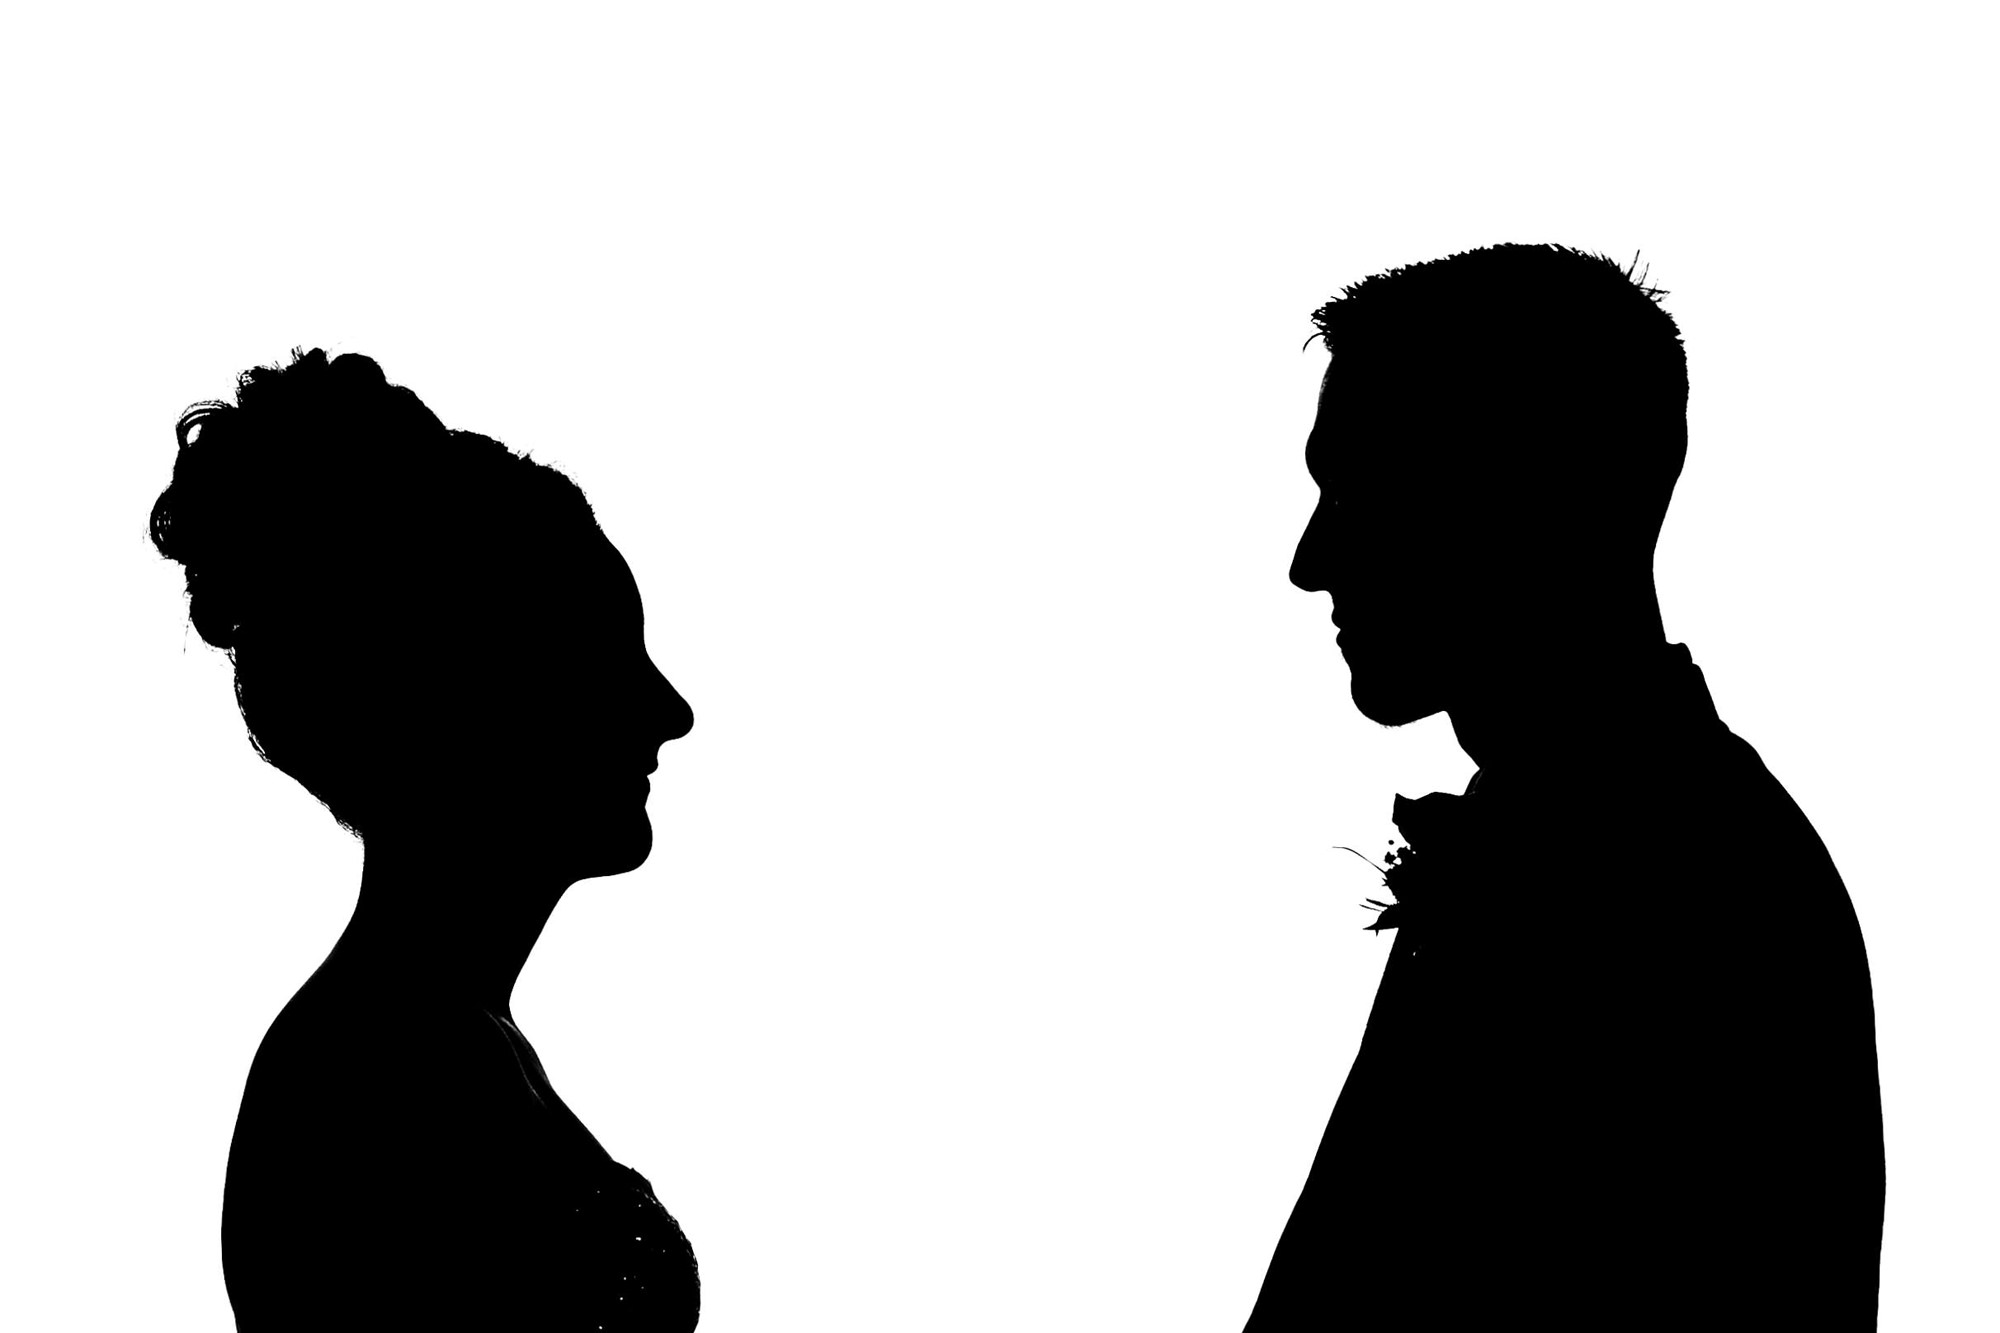 silhouette of couple facing each other during wedding ceremony. huntsman inn wedding photography by emma and rich.